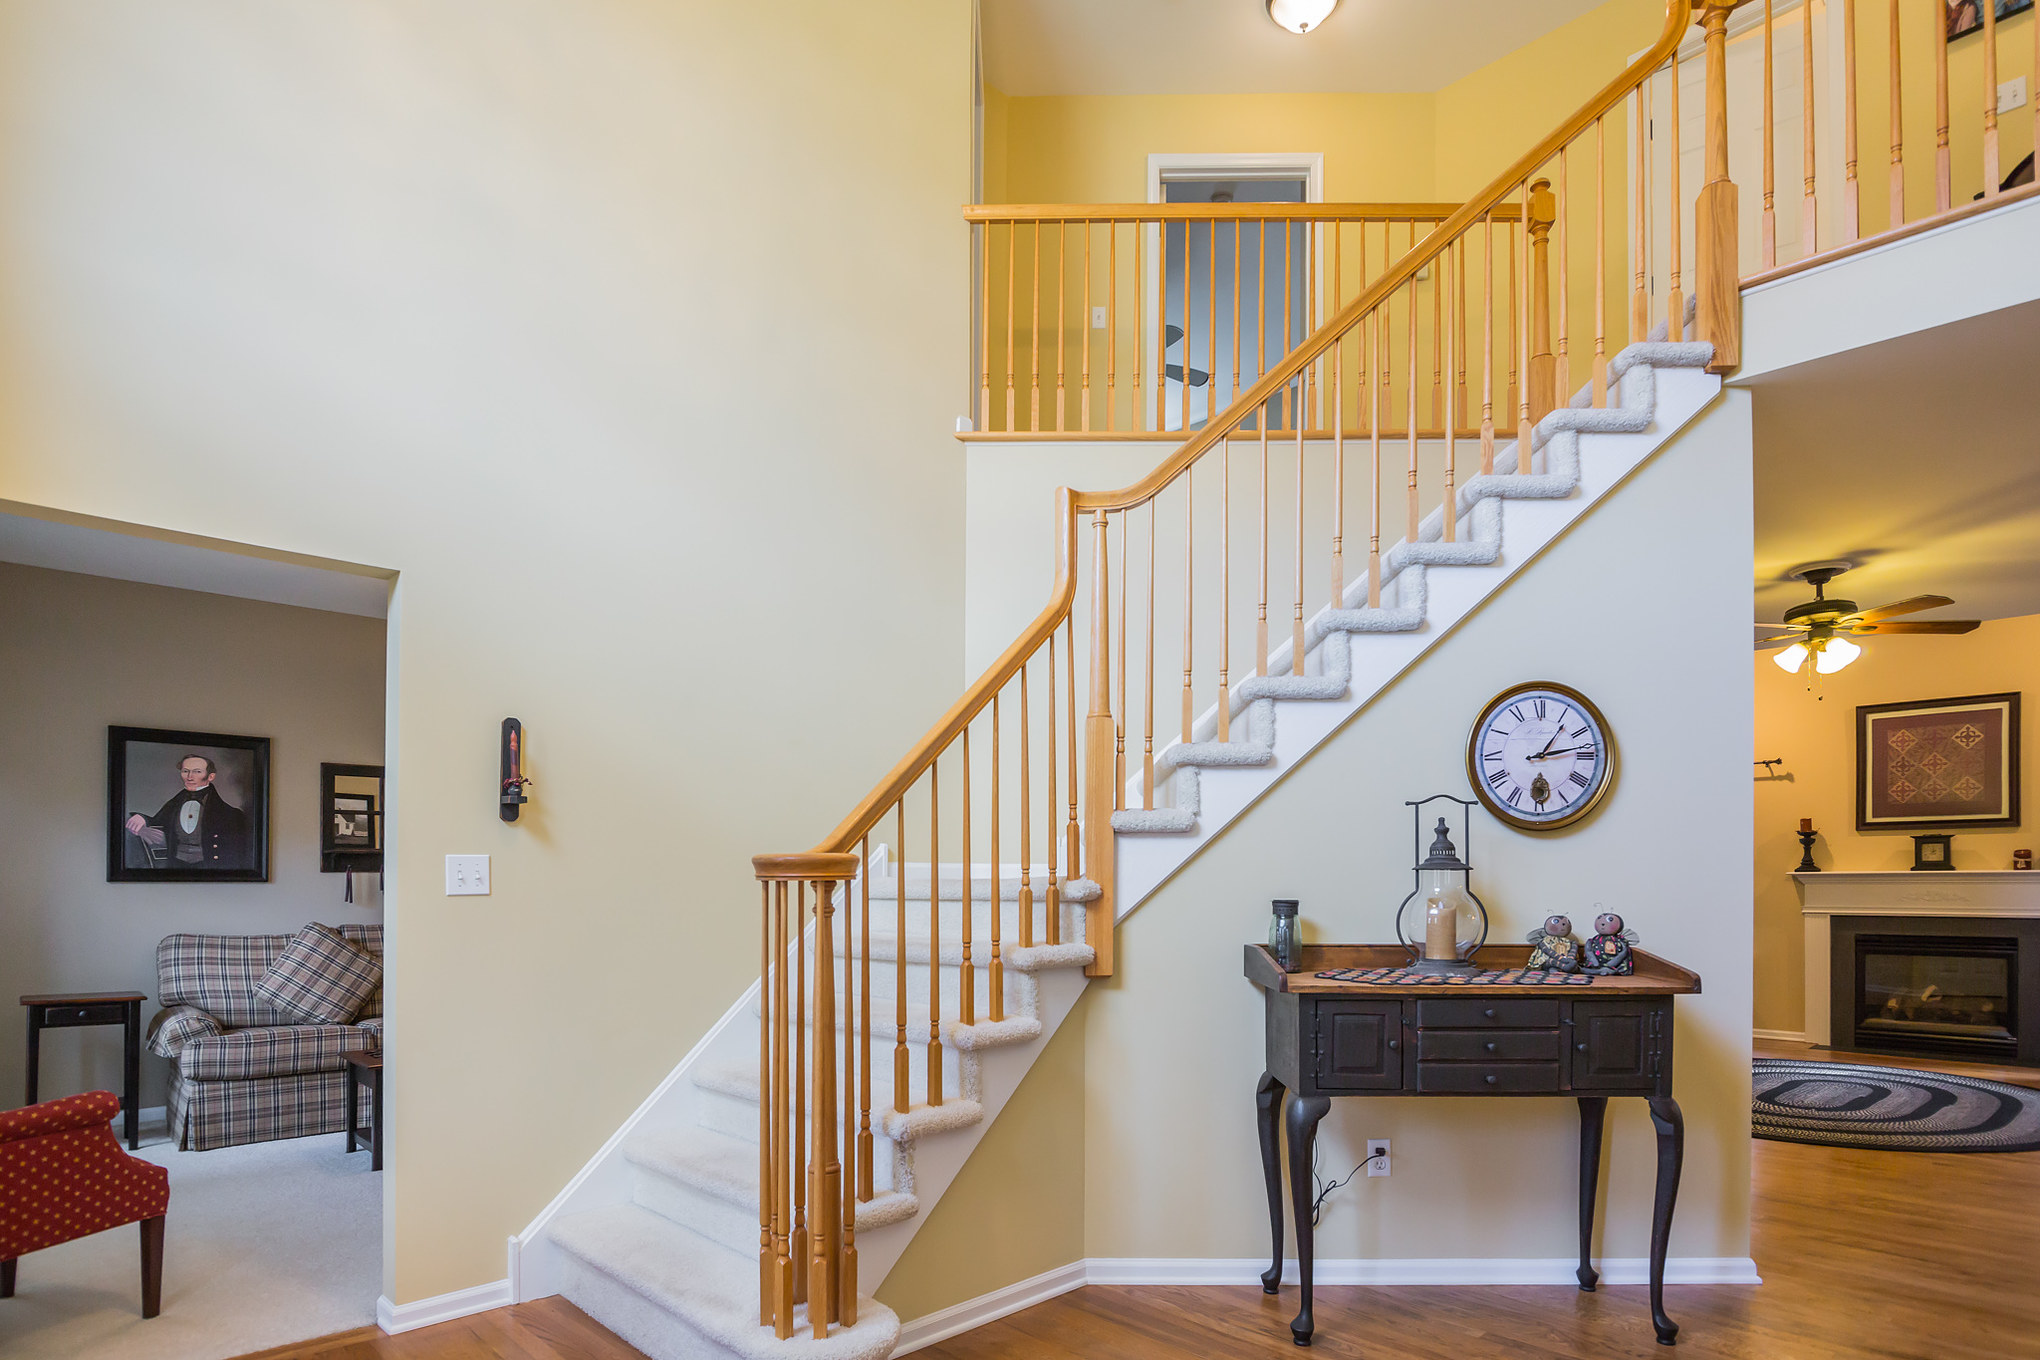 Located in Voorhees Township, NJ. Listing Agent: JoAnne Paxson